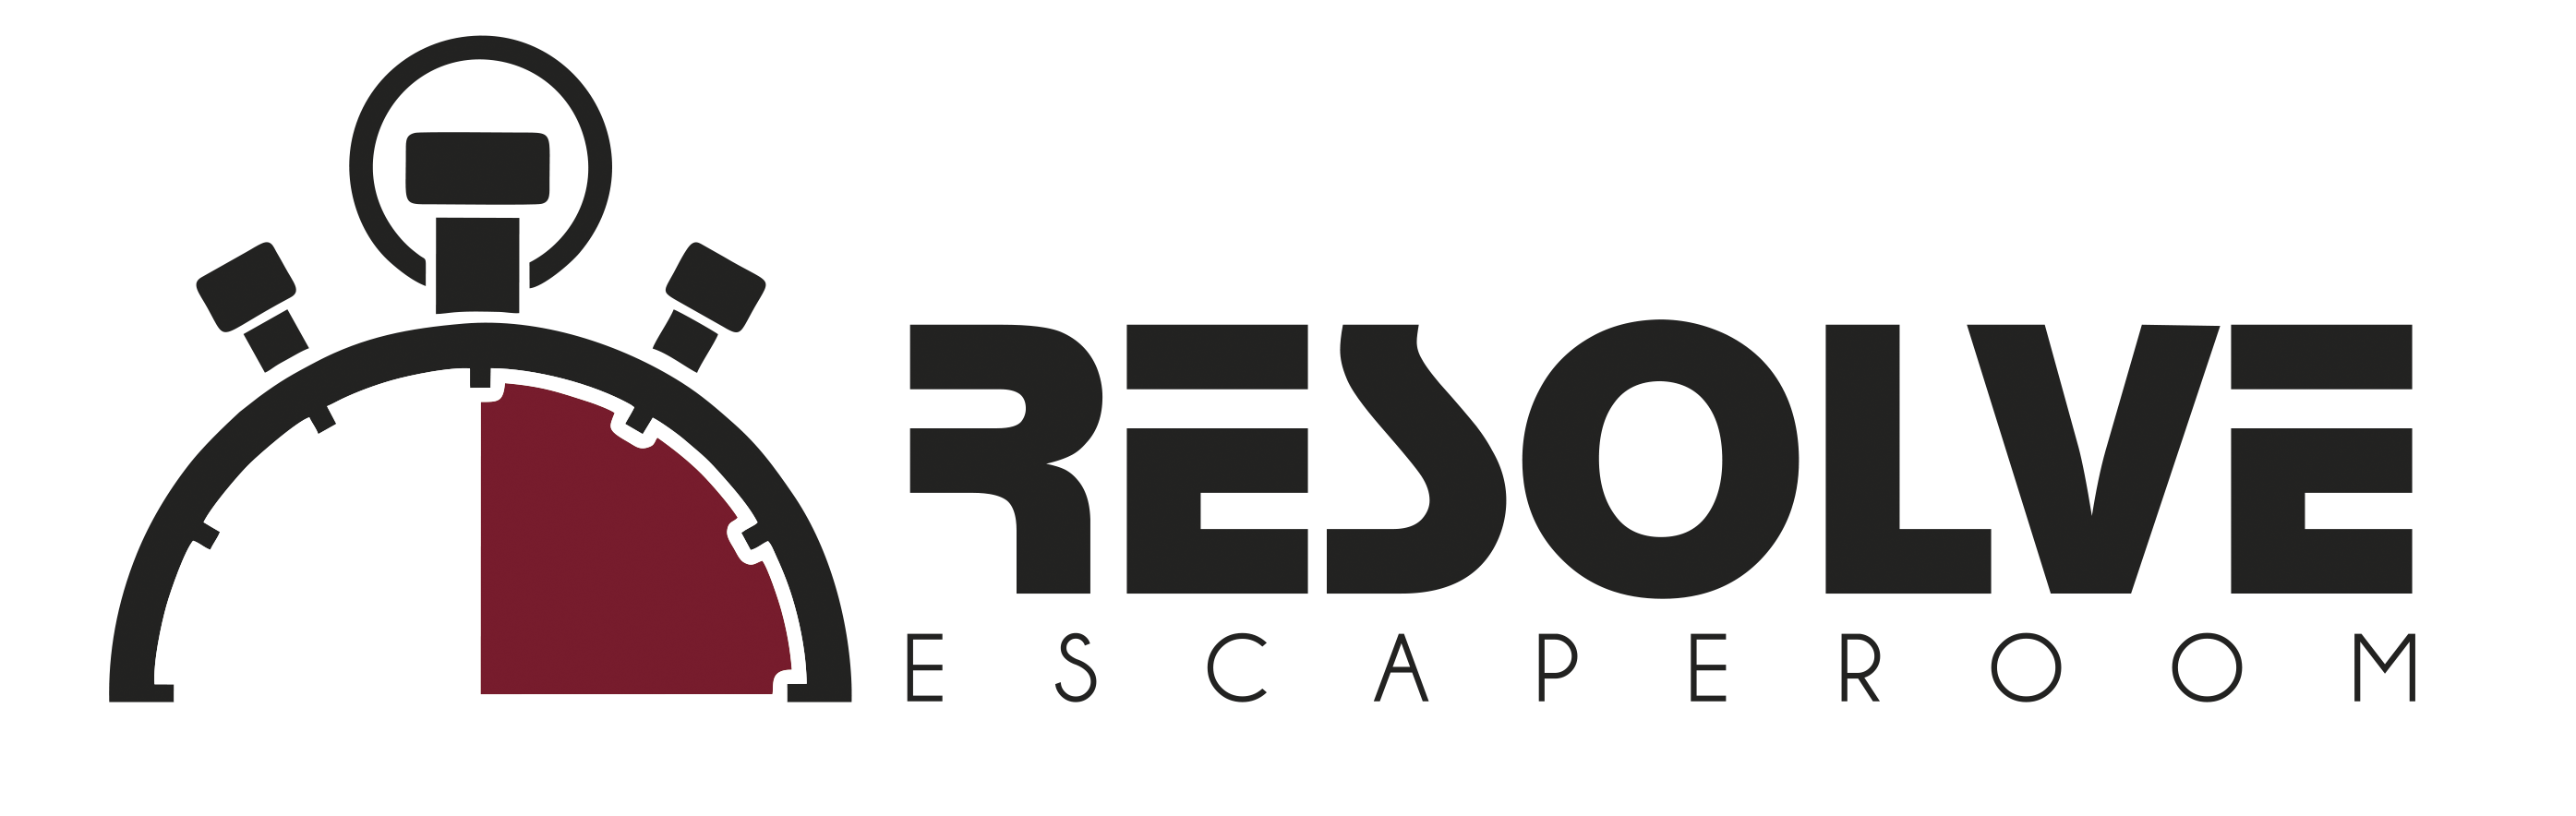 Escape Room Resolve